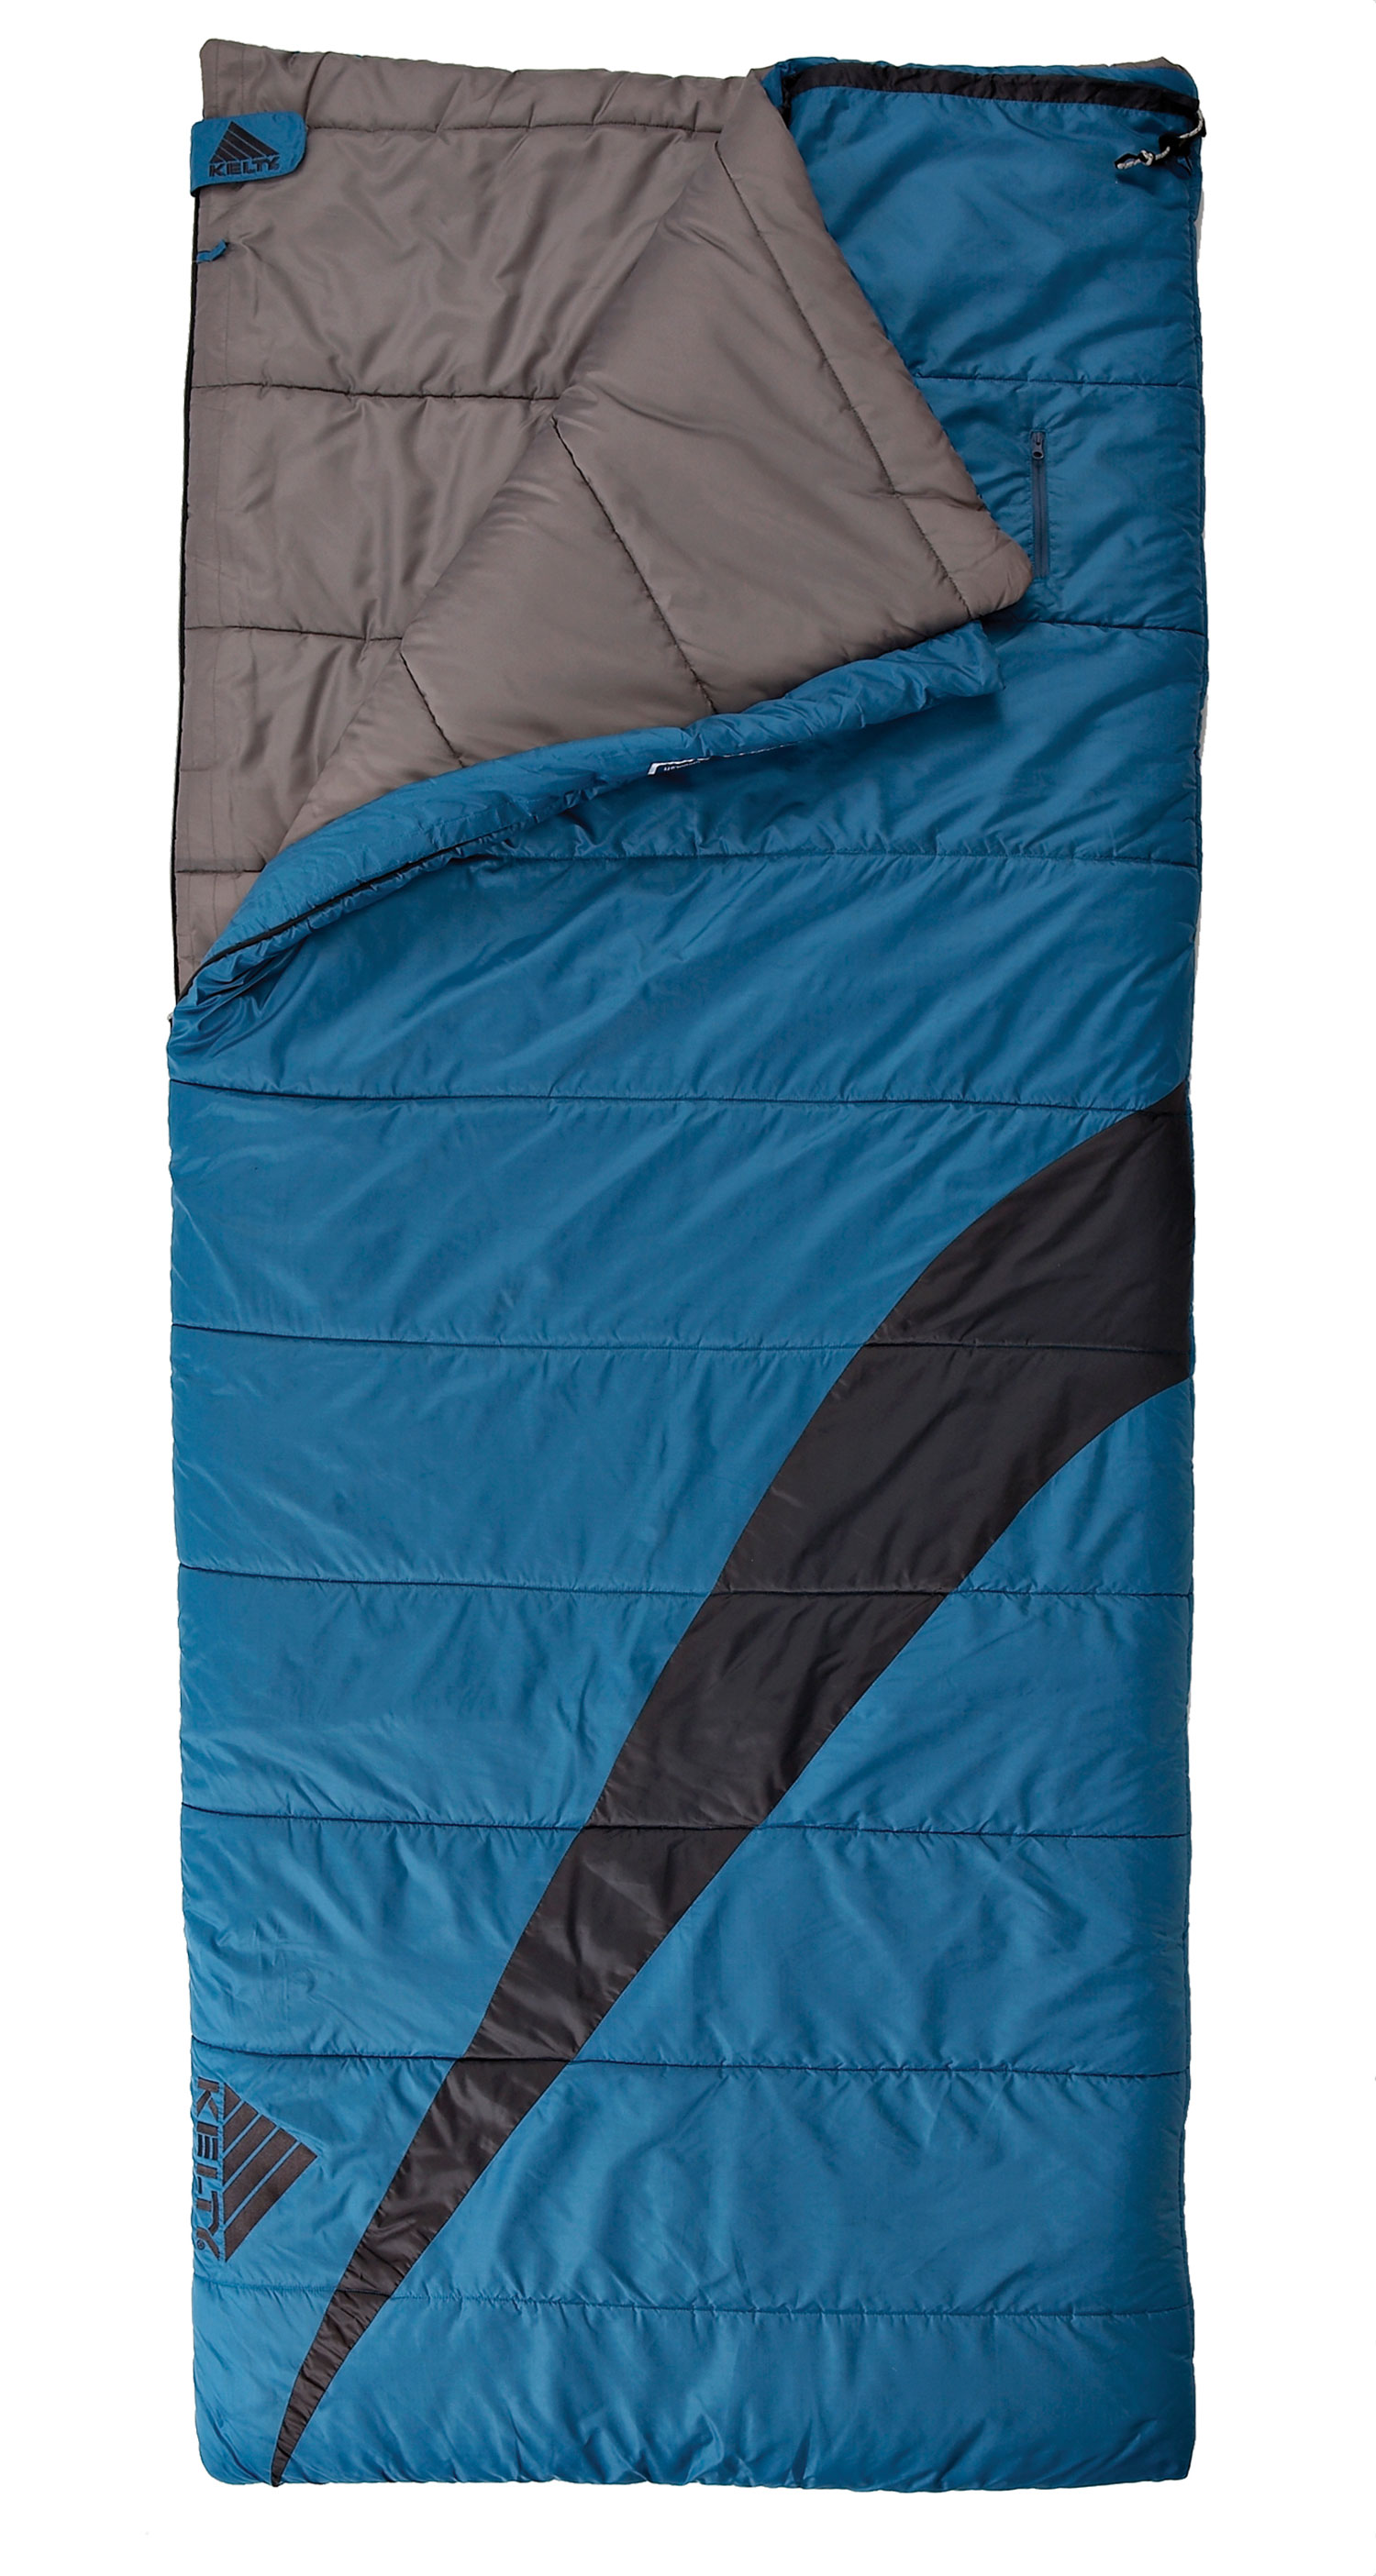 "Camp and Hike The Corona 30 degree is a roomy rectangular sleeping bag for summer adventures. This camping bag is perfect for the value-minded family on the go.Key Features of the Kelty Corona 30 Degree Regular Sleeping Bag: Two-layer, offset-quilt construction Two-way locking blanket zipper Zipper draft tube with anti-snag design Bag can be unzipped and opened flat for use as a blanket Internal liner loops External storage pocket Roll-up straps FatMan and Ribbon drawcords Captured cordlock Differential cut to maximize loft and warmth Comes in a display box Temp Rating: 30 / -1 degree Celcius Shape: Rectangular Fits to 6' 5"" / 196 cm Length: 80"" / 203 cm Shoulder girth: 68"" / 173 cm Fill weight: 50 oz. / 1.4 kg Total weight: 4 lb. 13 oz. / 2.2 kg Stuffed diameter: 14"" / 36 cm Stuffed length: 32"" / 81 cm - $41.97"